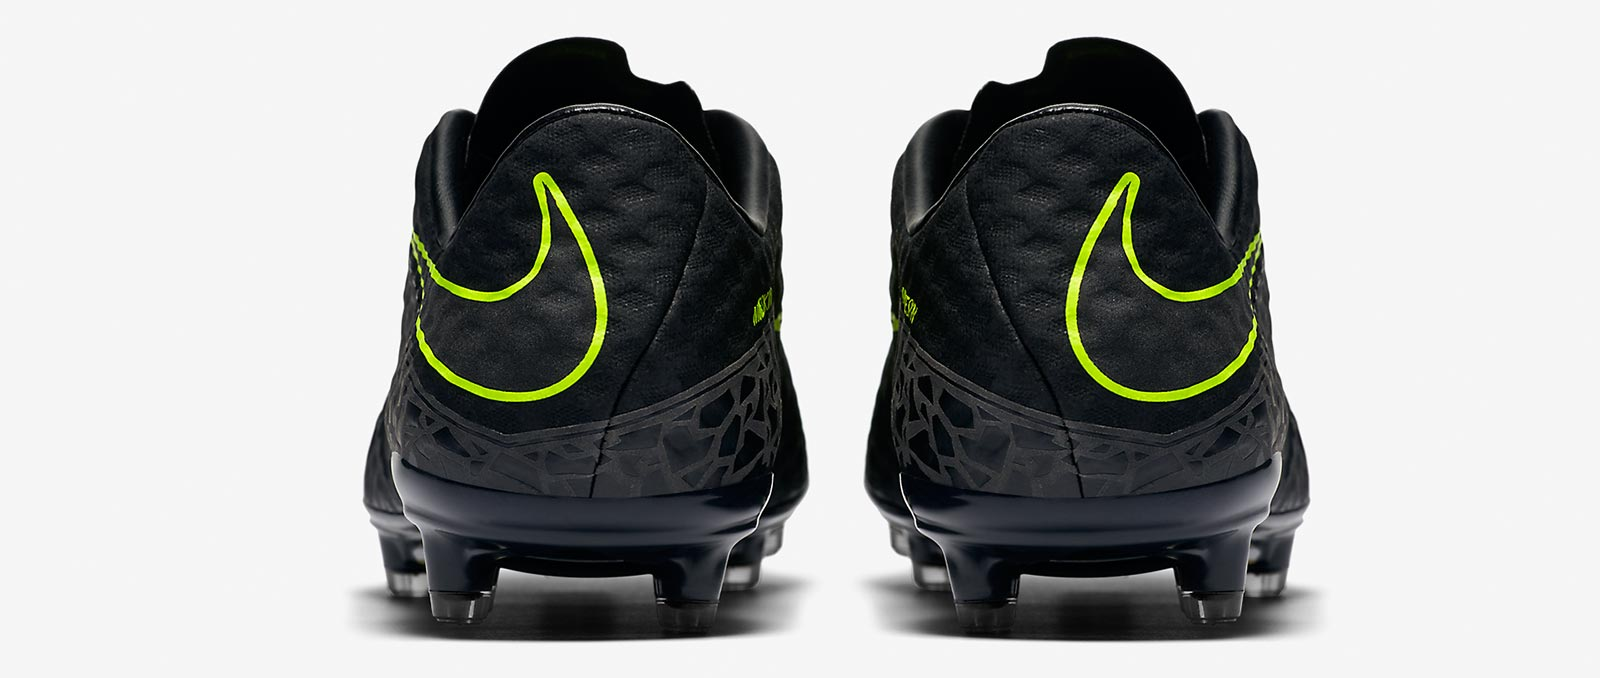 black volt nike hypervenom phinish 2016 boots revealed. Black Bedroom Furniture Sets. Home Design Ideas